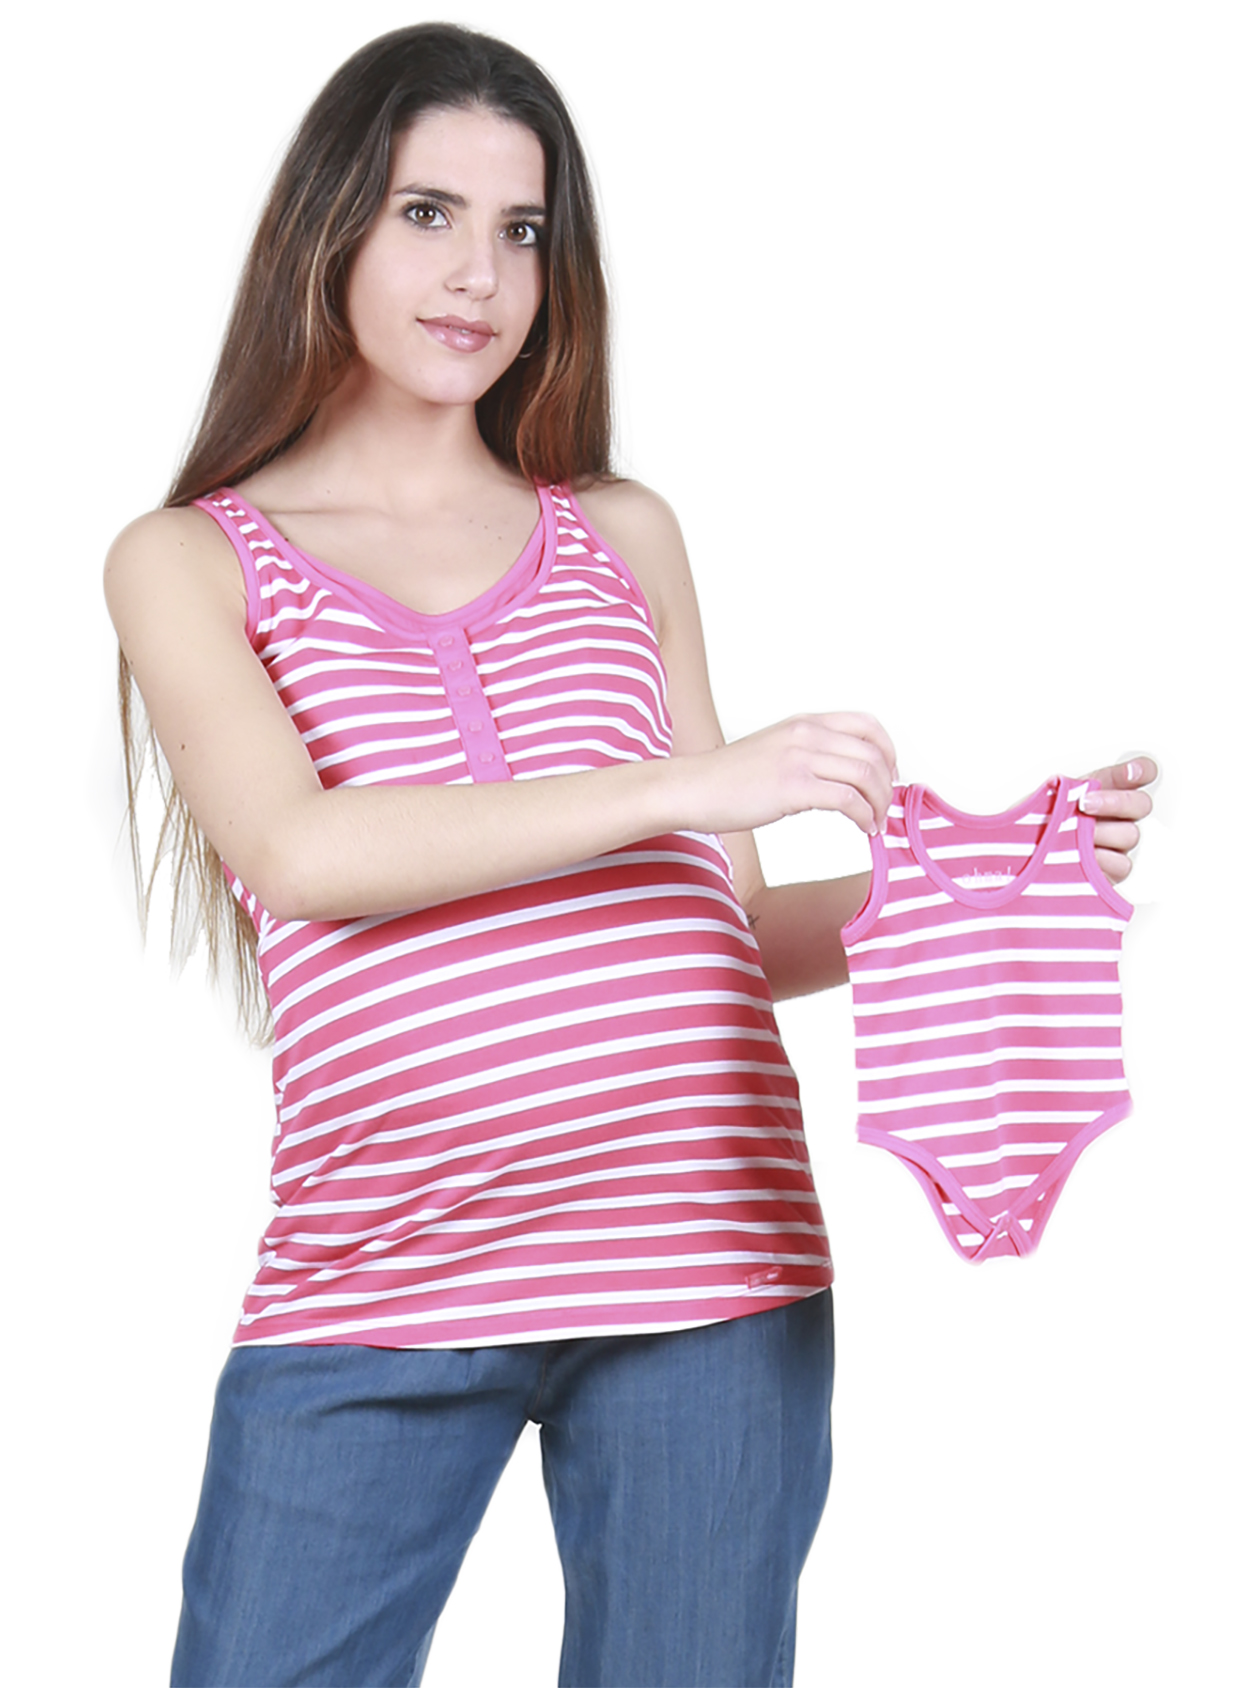 9a0faf29cc514 Striped Maternity and Nursing Vest Top With Matching Baby Vest ...